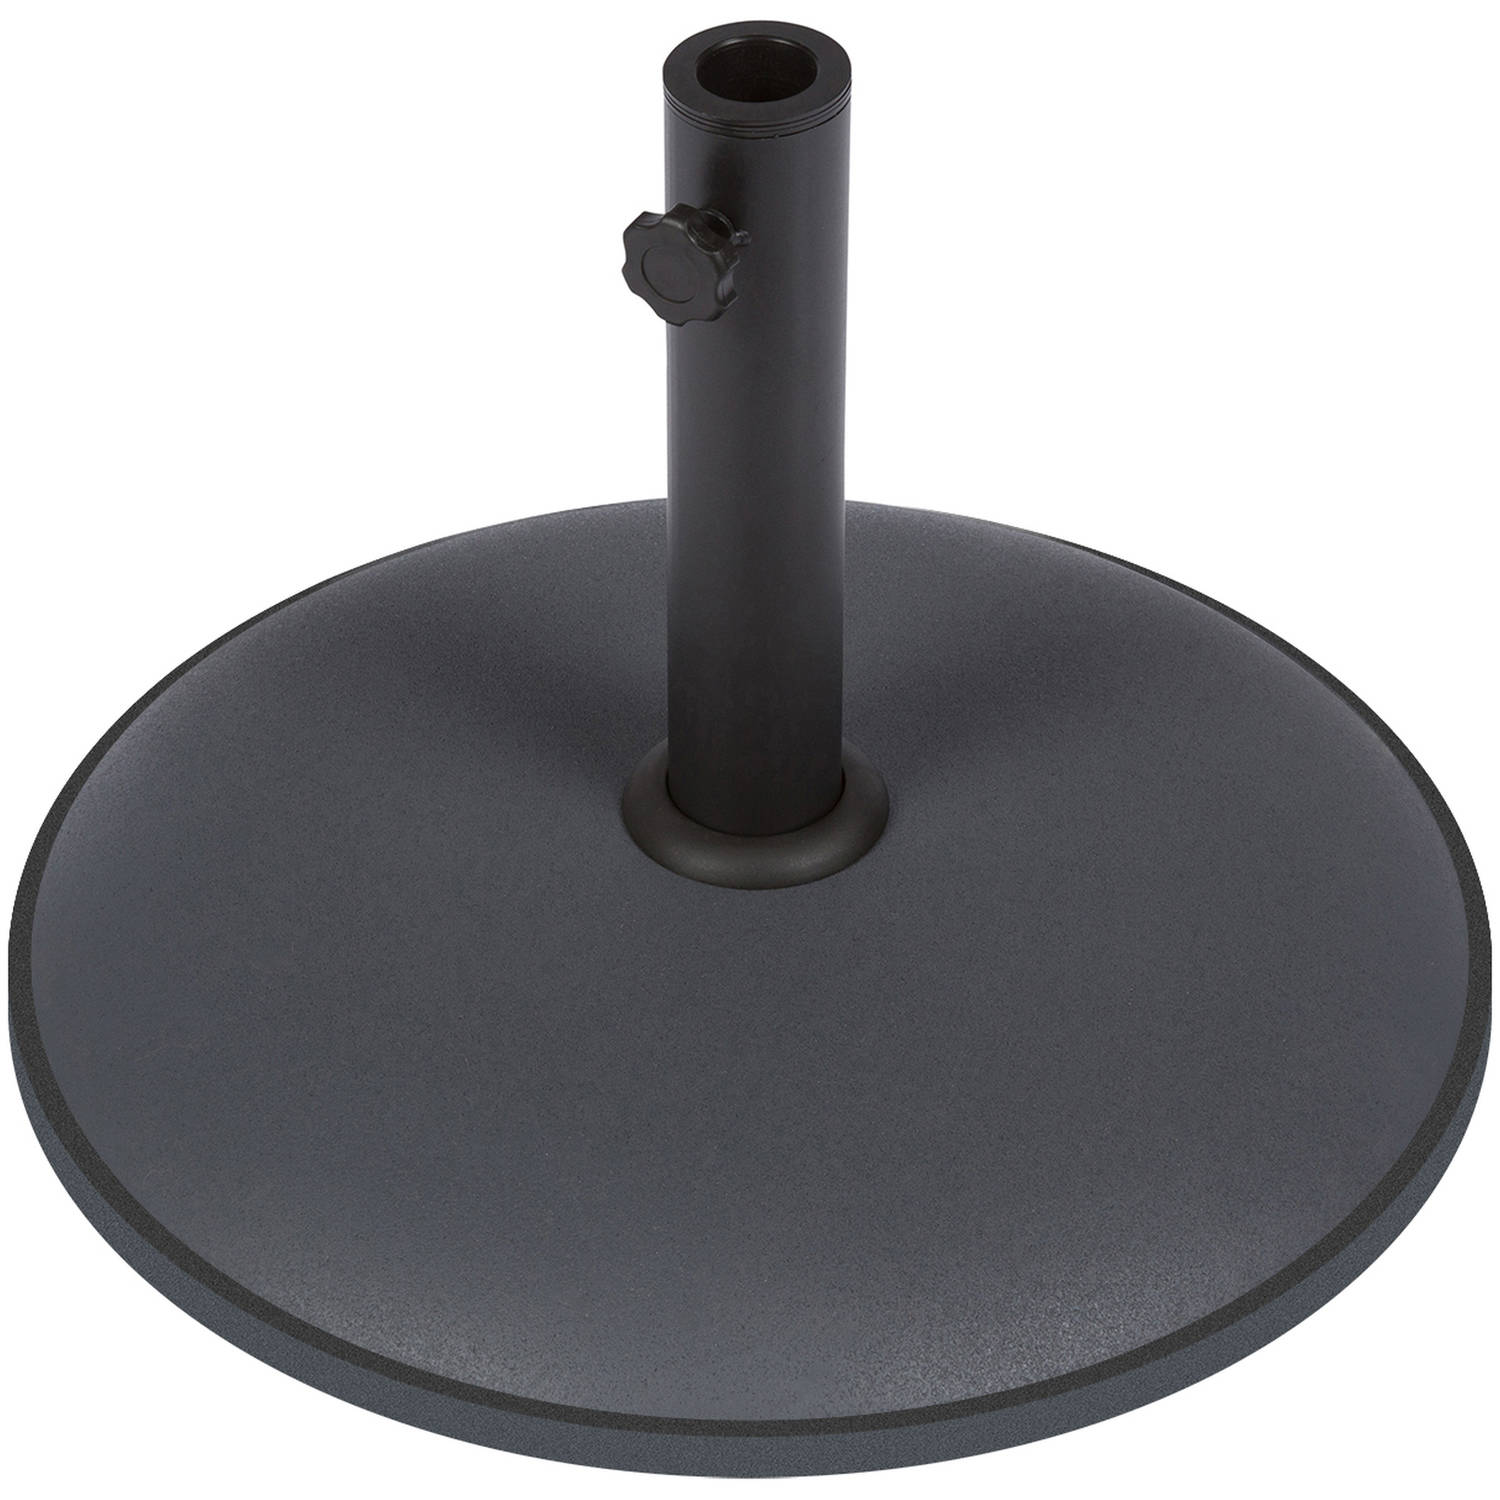 Sturdy Cement Umbrella Base By Trademark Innovations, Gray